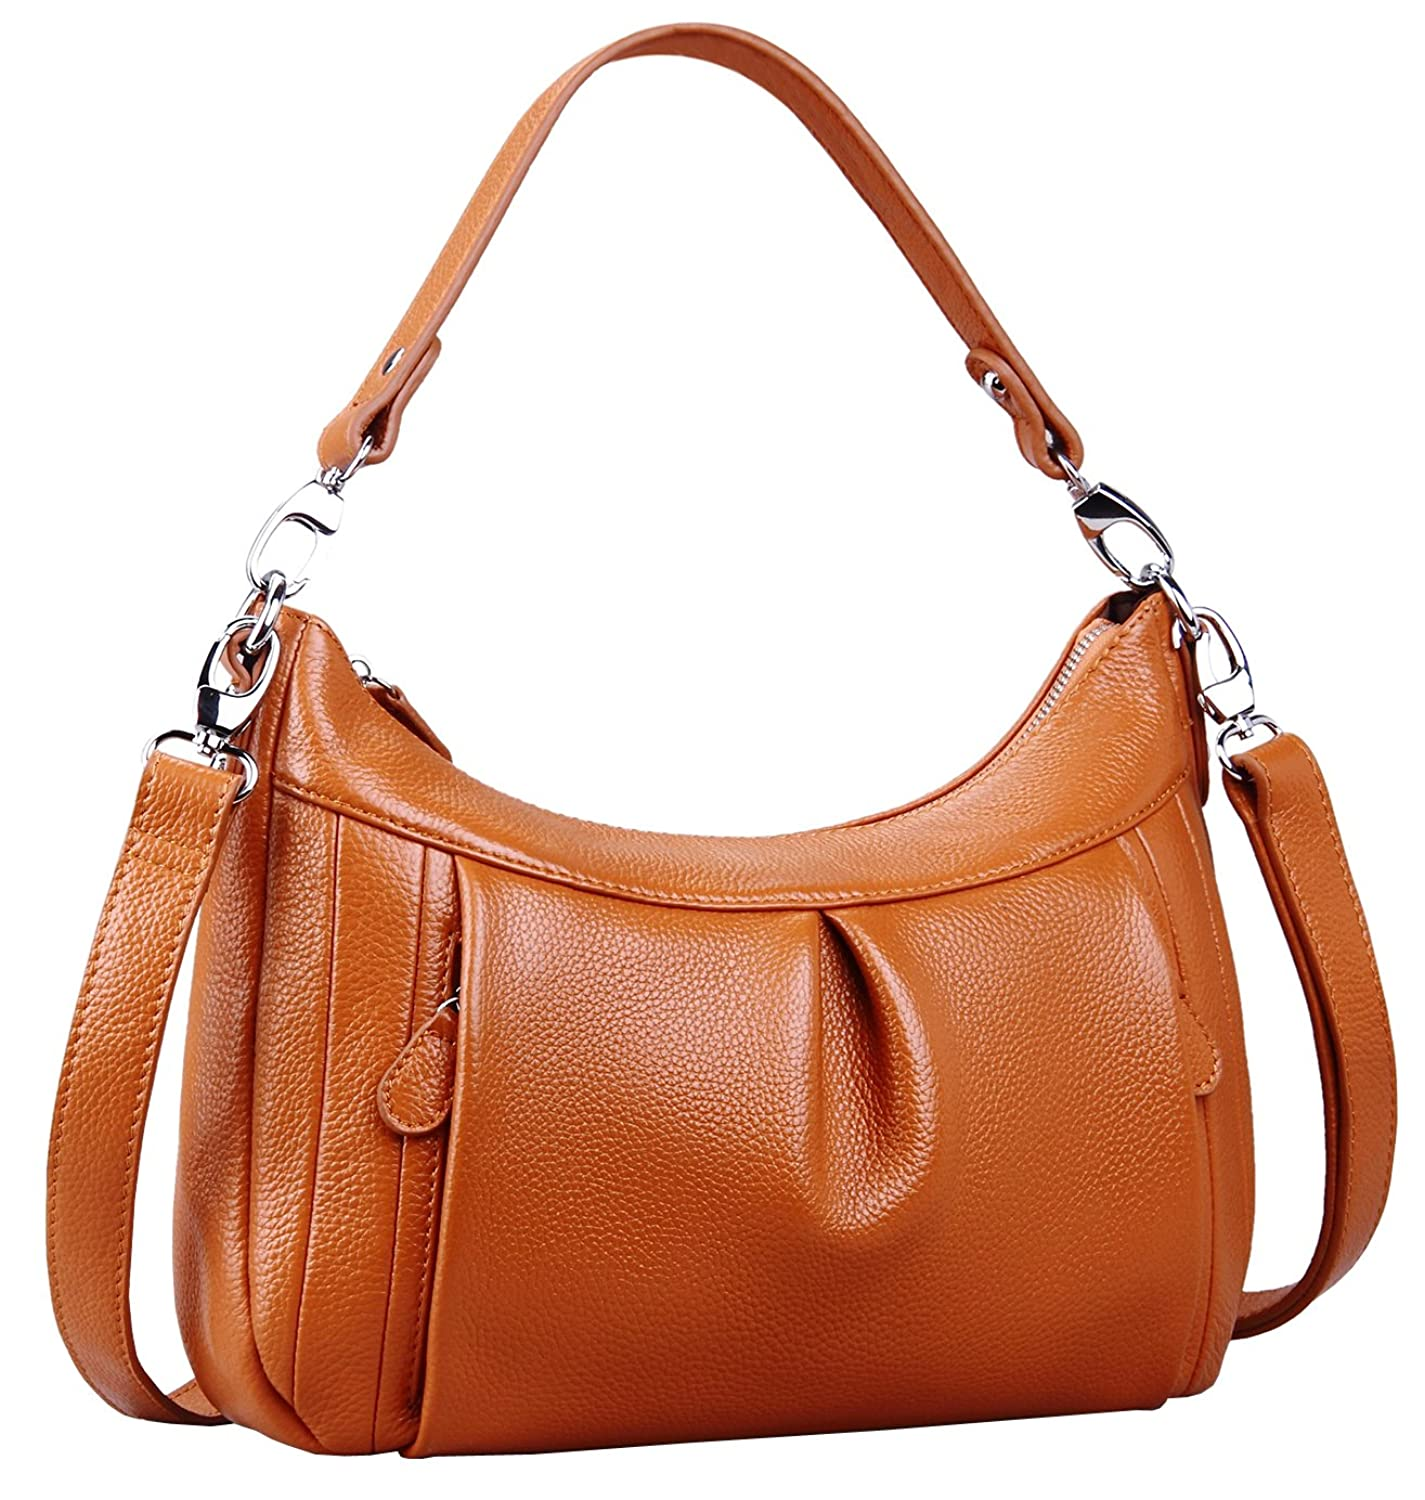 Heshe Women鈥檚 Shoulder Bag Cross Body Handbag Purse